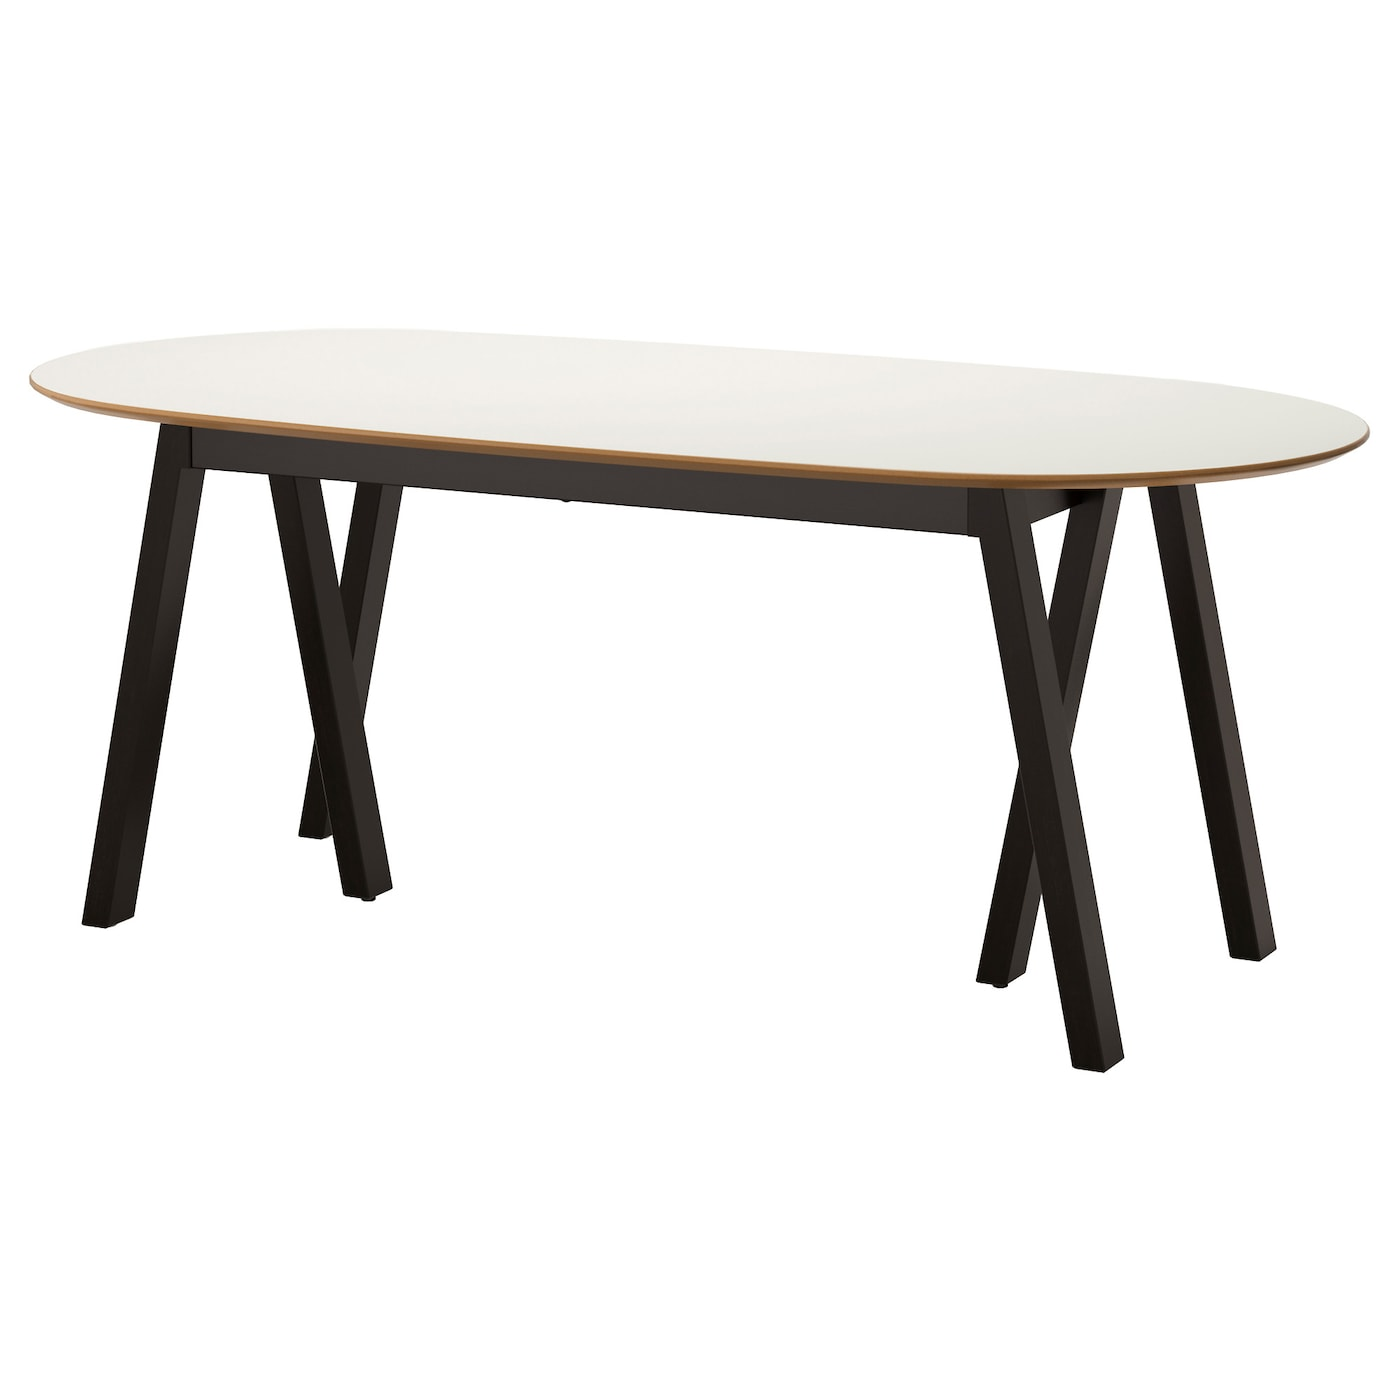 Small Dining Tables - Up to 4 Seats | IKEA Ireland